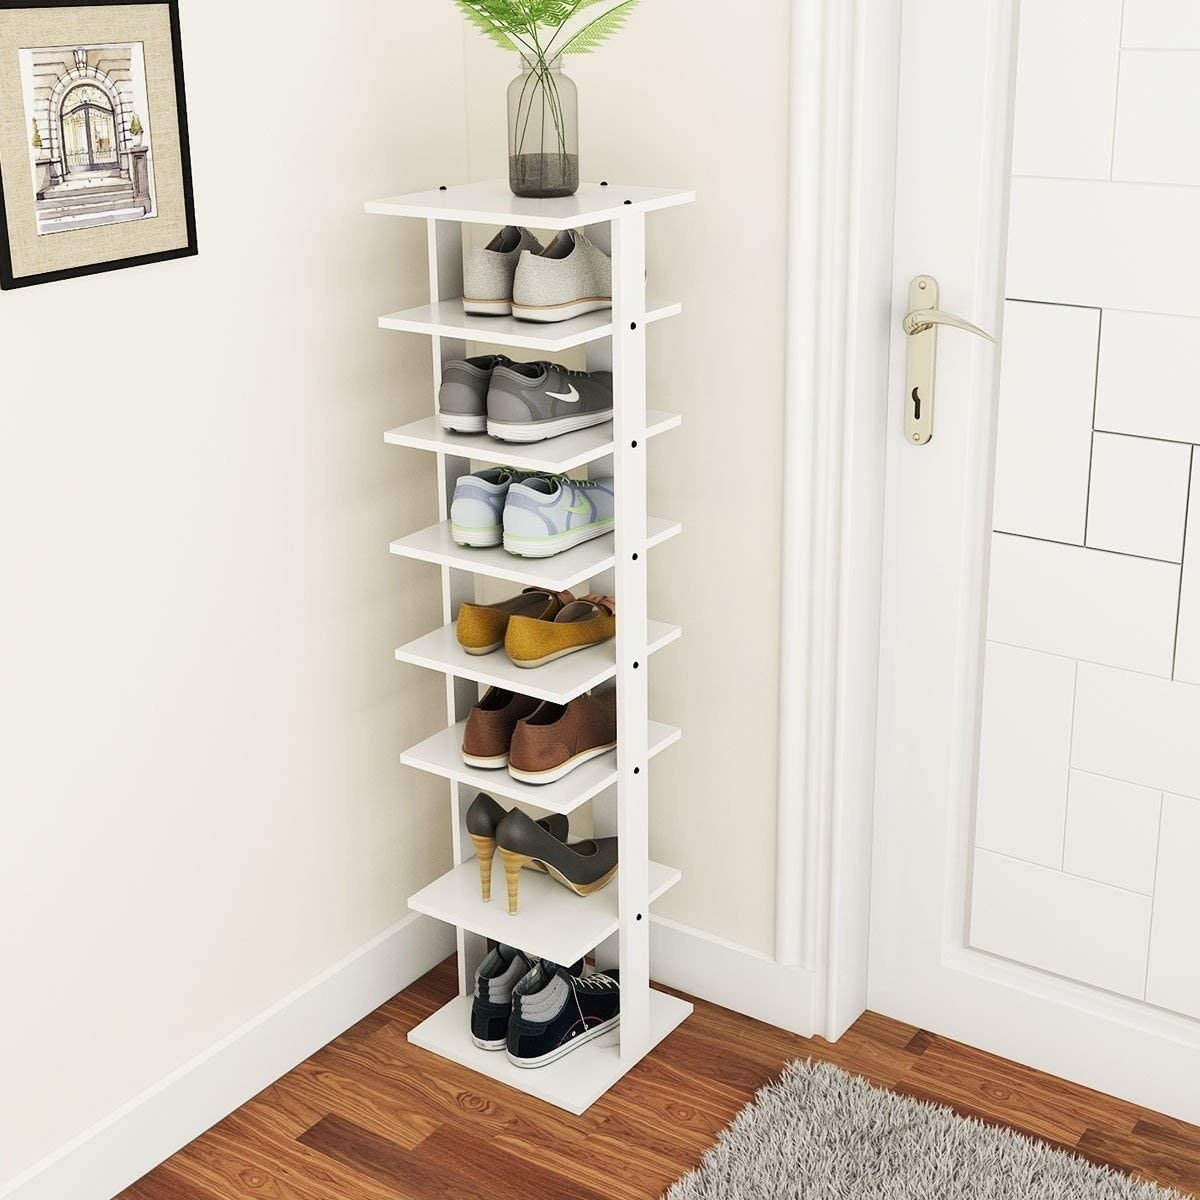 A seven tier simple white standing shoe rack